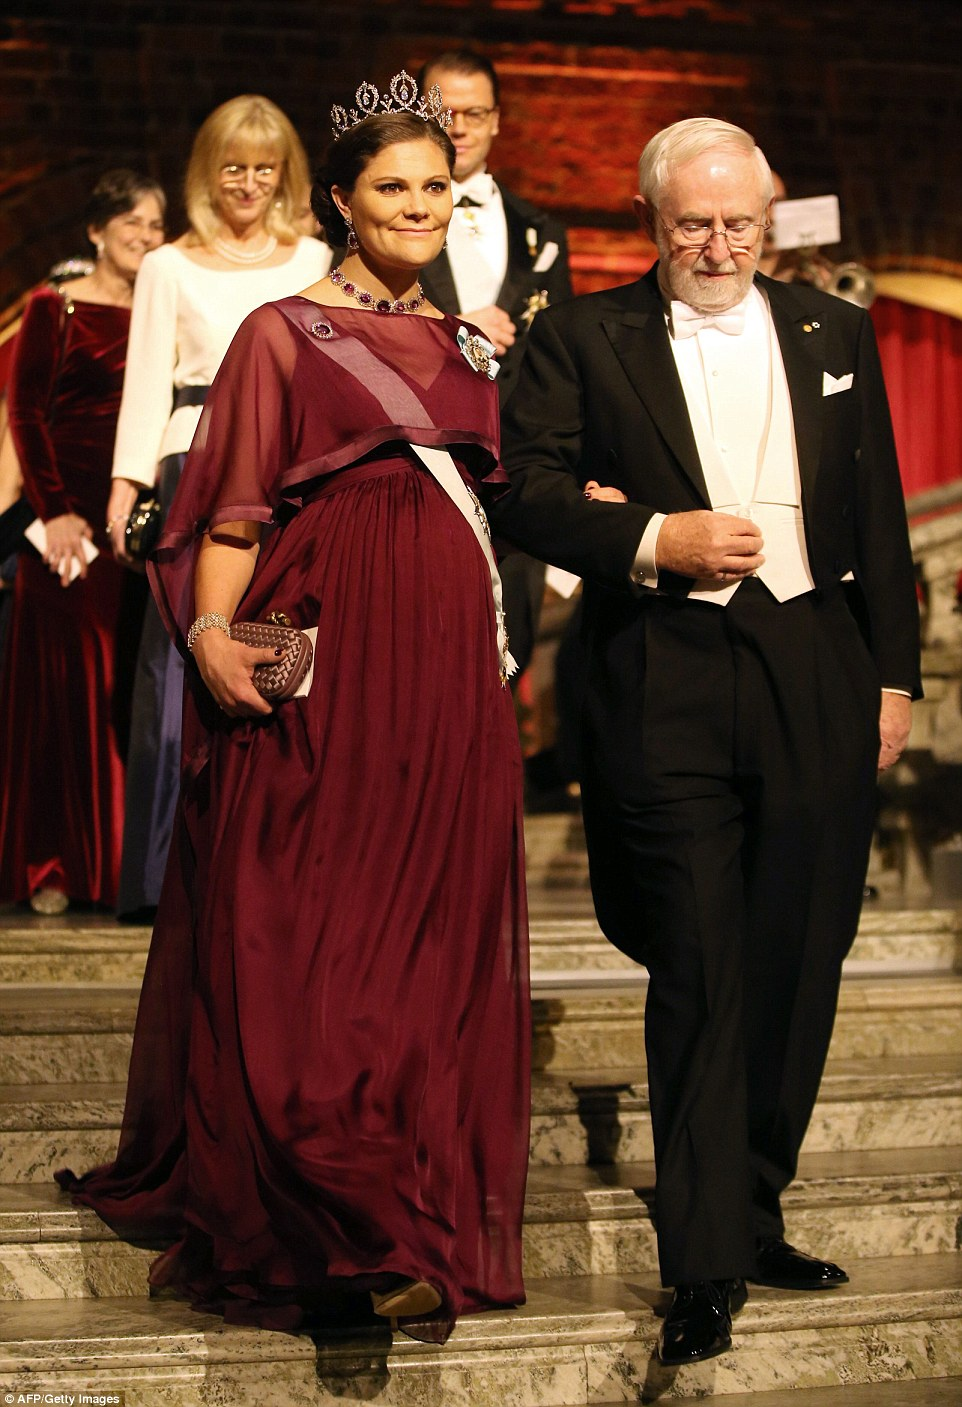 Pregnant Crown Princess Victoria showed off her baby bump in an elegant skirt and sheer top, accessorised with the dazzling Connaught Diamond Tiara, as she entered on the arm ofNobel Chemistry Prize 2015 co-winner Canadian Arthur B McDonald wearing white tie and tails